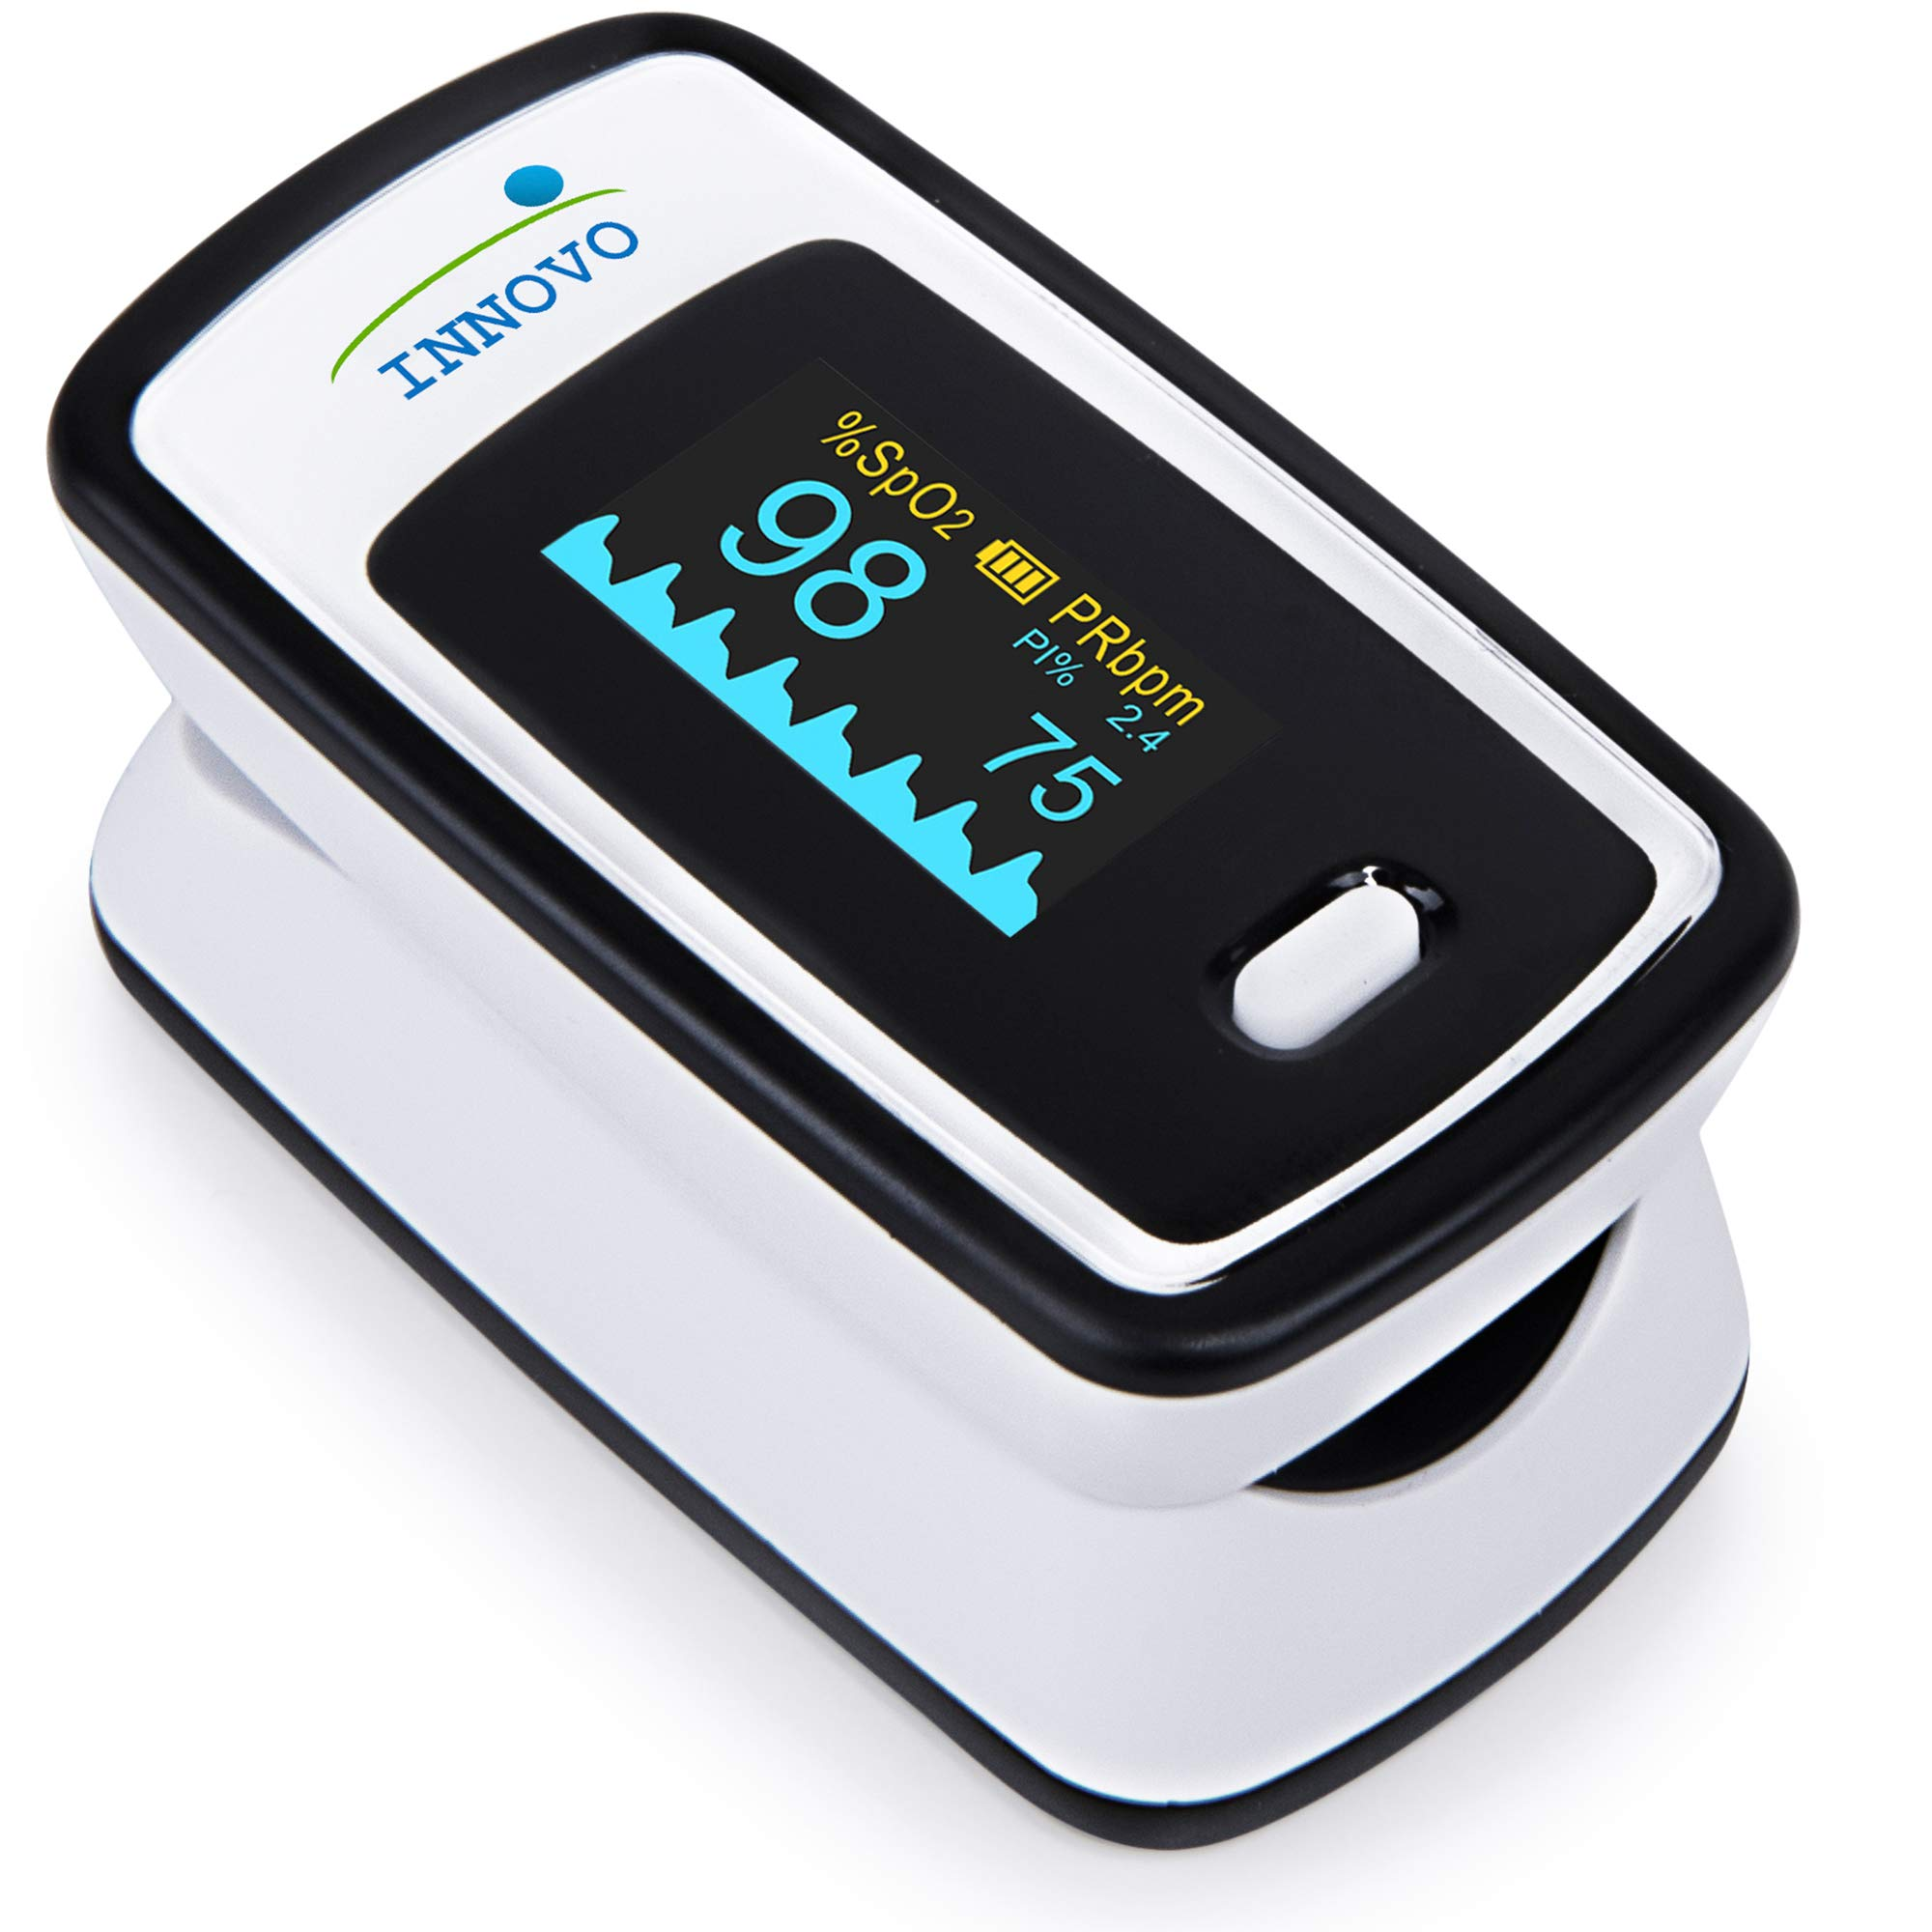 Innovo Deluxe Fingertip Pulse Oximeter with Plethysmograph & Perfusion Index